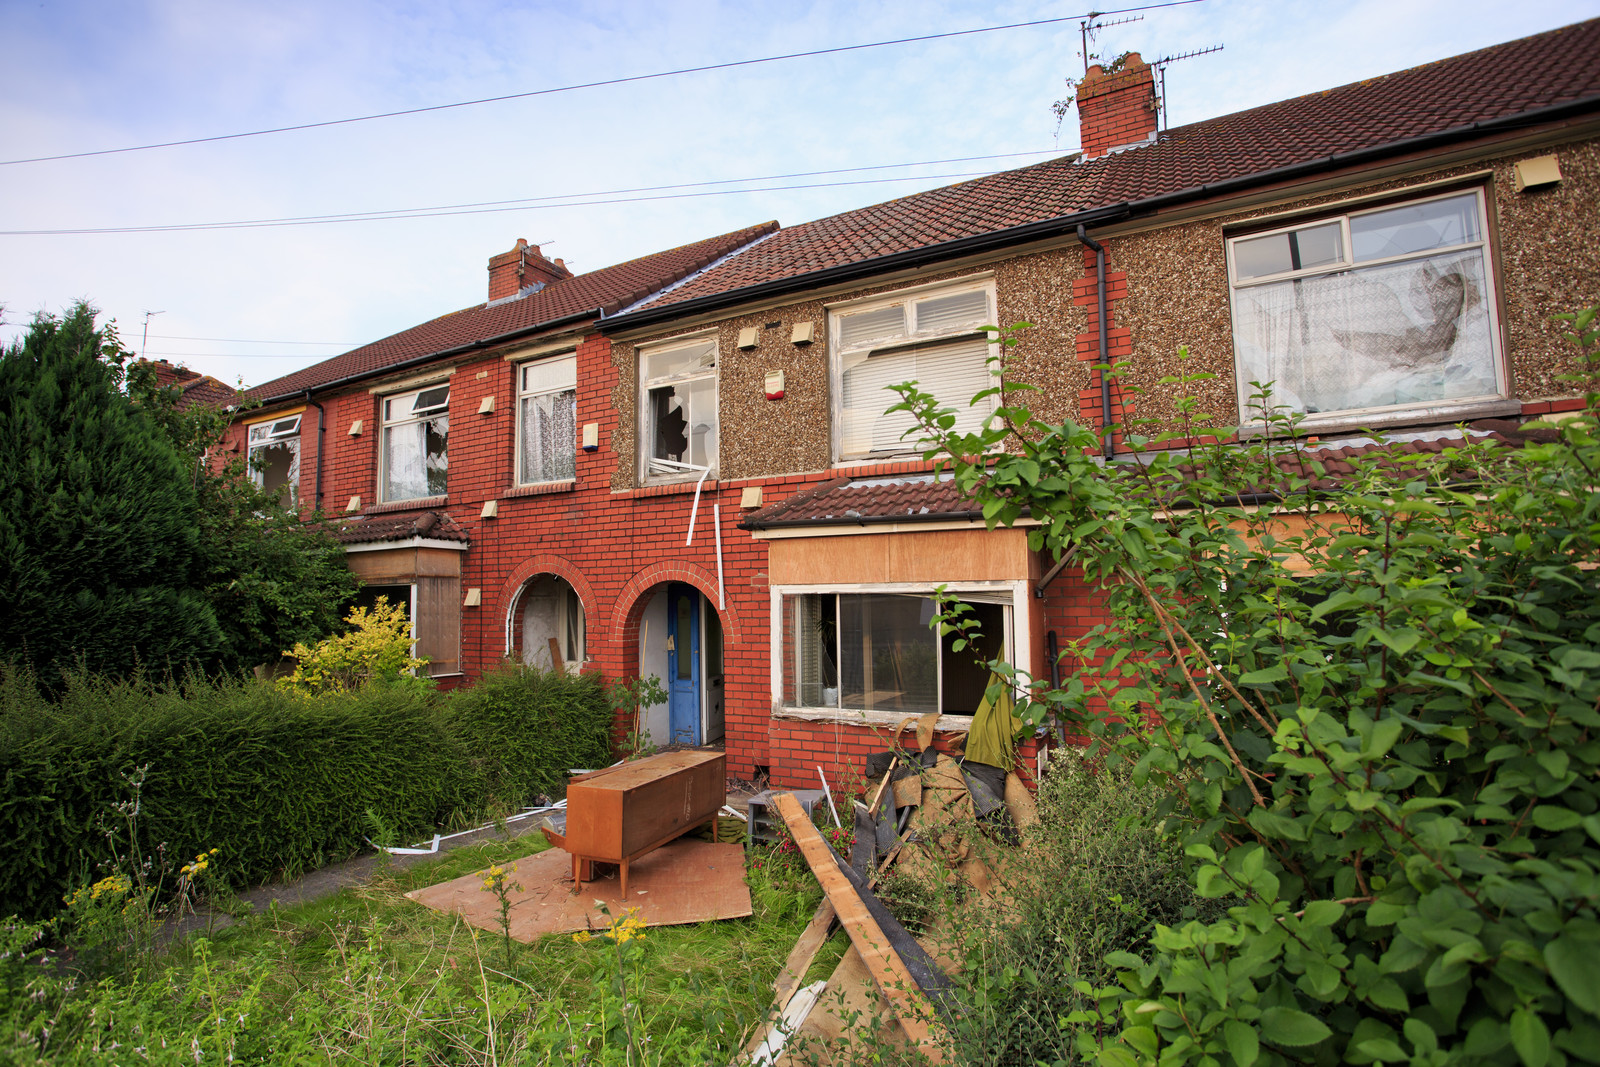 A Condensed History Of Non Traditional Housing In The UK